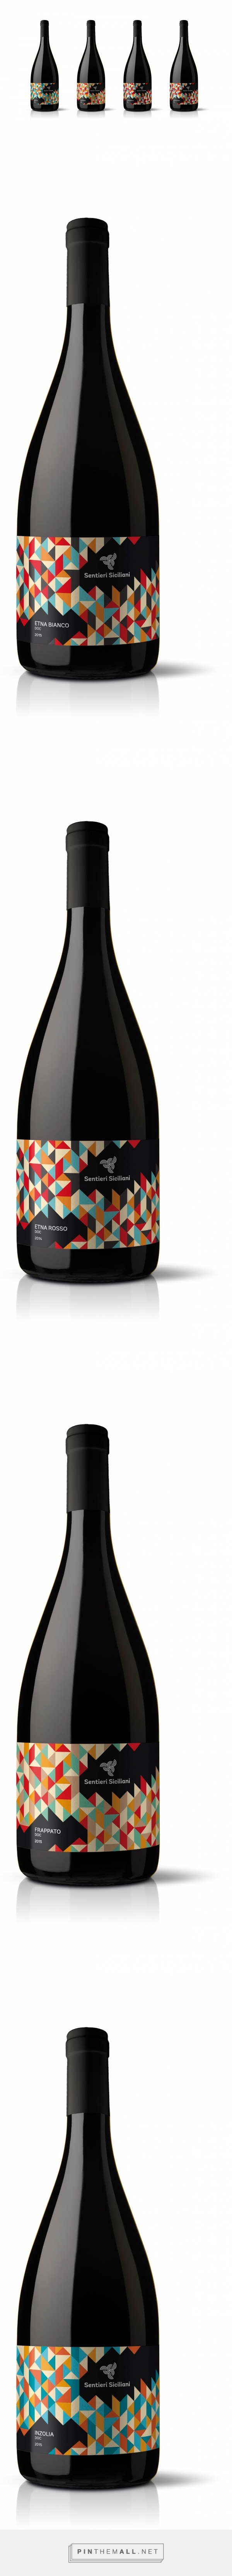 Sentieri Siciliani Wine - Packaging of the World - Creative Package Design Gallery - http://www.packagingoftheworld.com/2016/07/sentieri-siciliani-wine.html